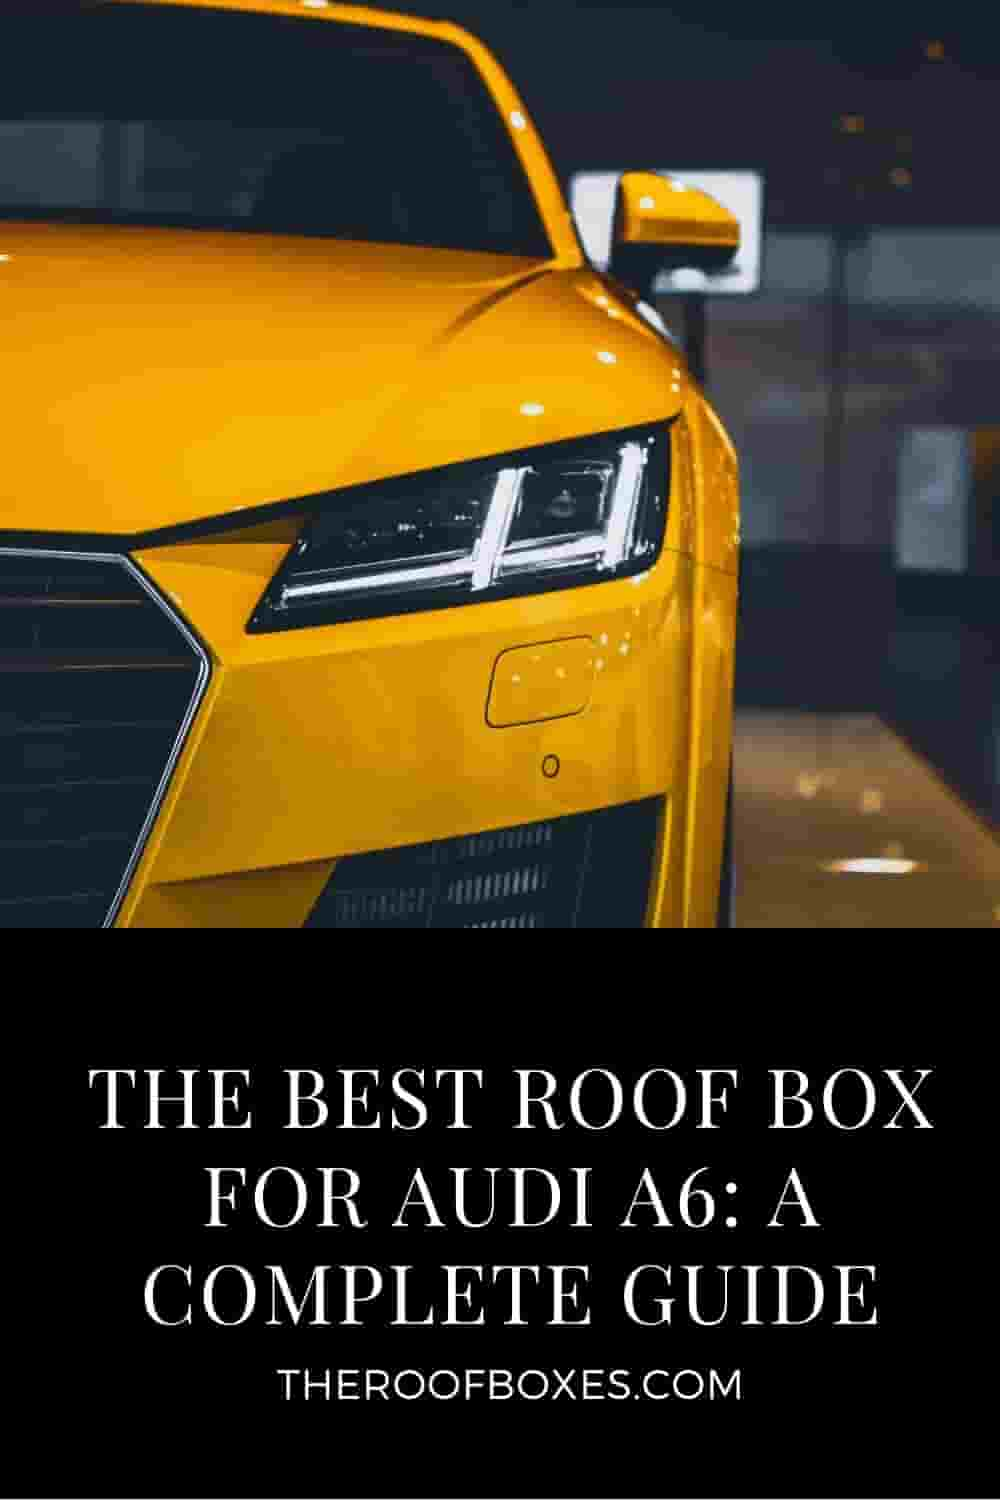 Roof Box for Audi A6 – Reviews and Comparison